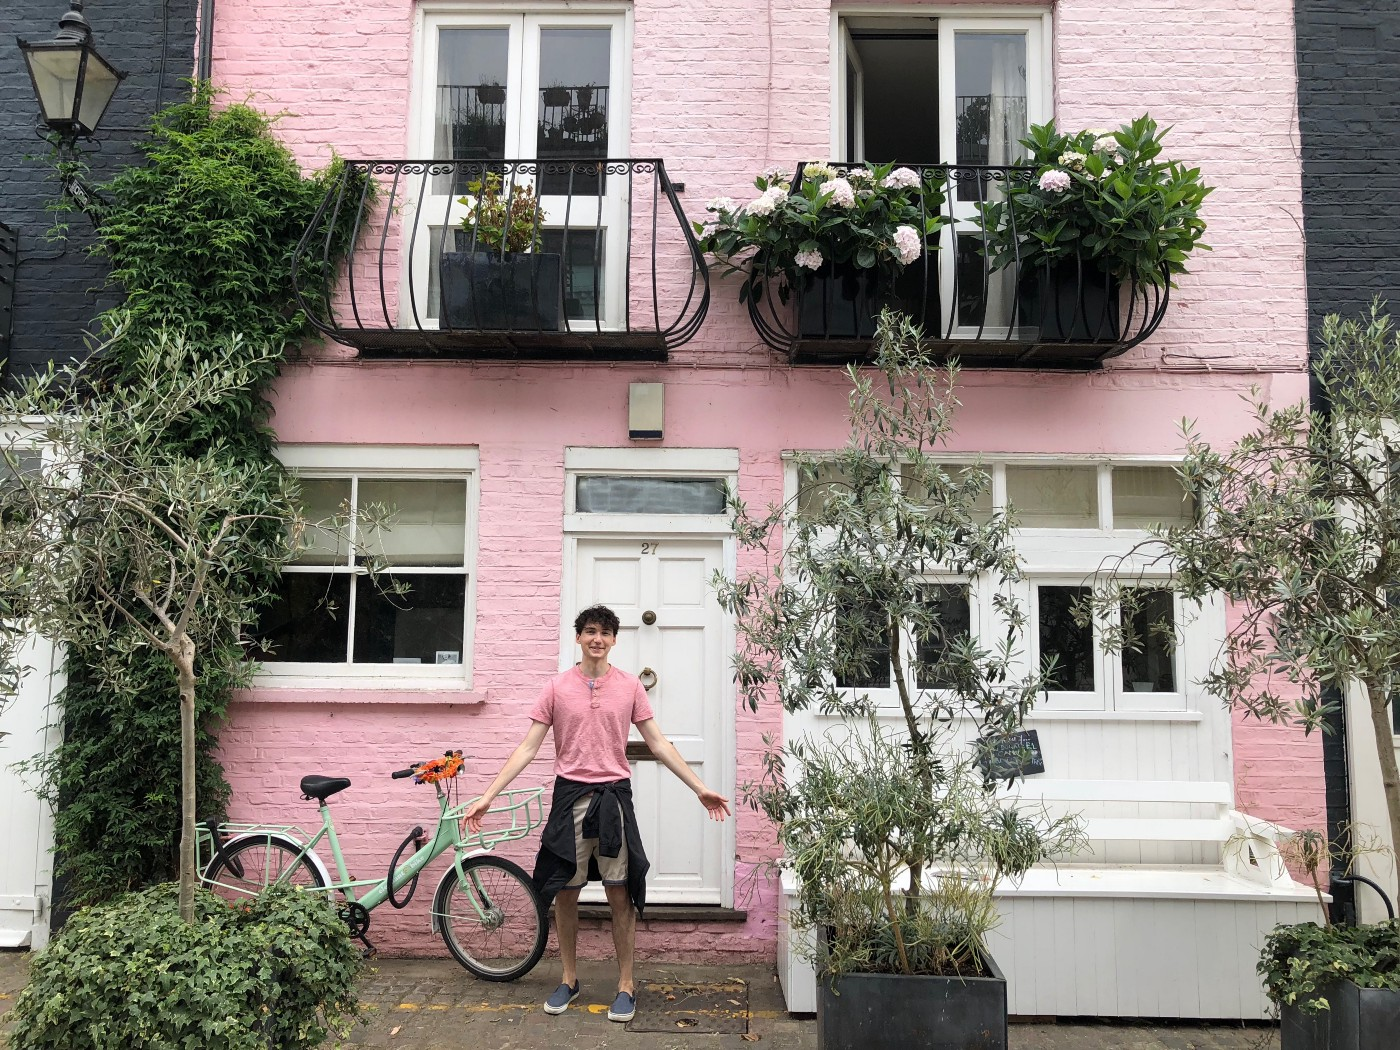 A boy in pink and black stands in front of a matching pink and black house with open arms. His name is Cole Tretheway.